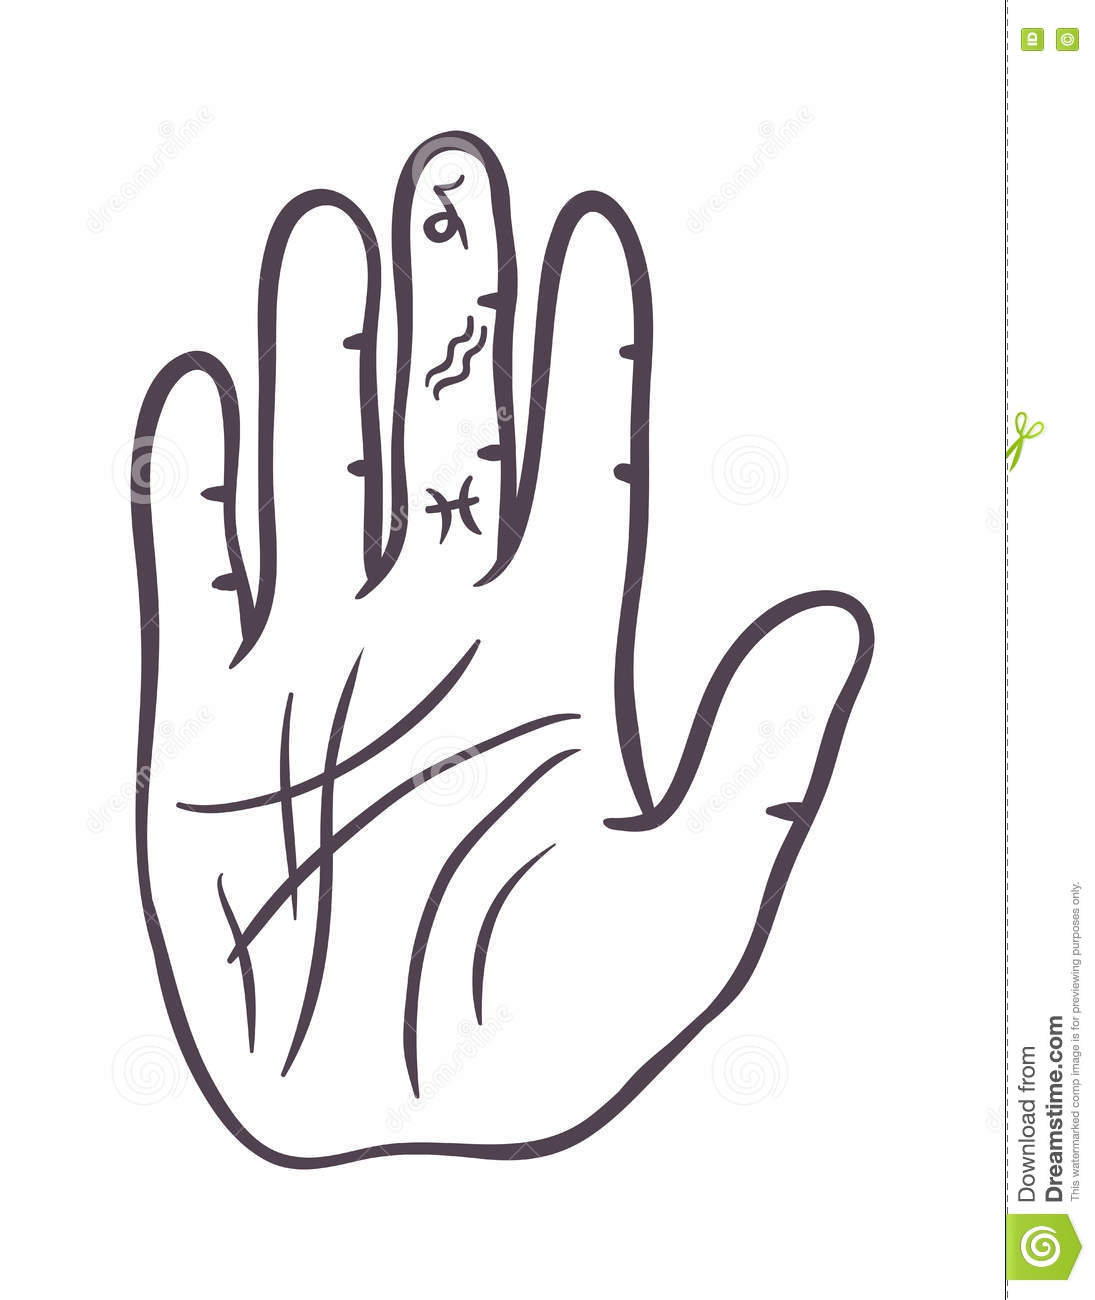 Pencil drawing fist hand sketch gesture vector illustration hand sketch human drawing creativity concept palm symbol divination life line hand sketch